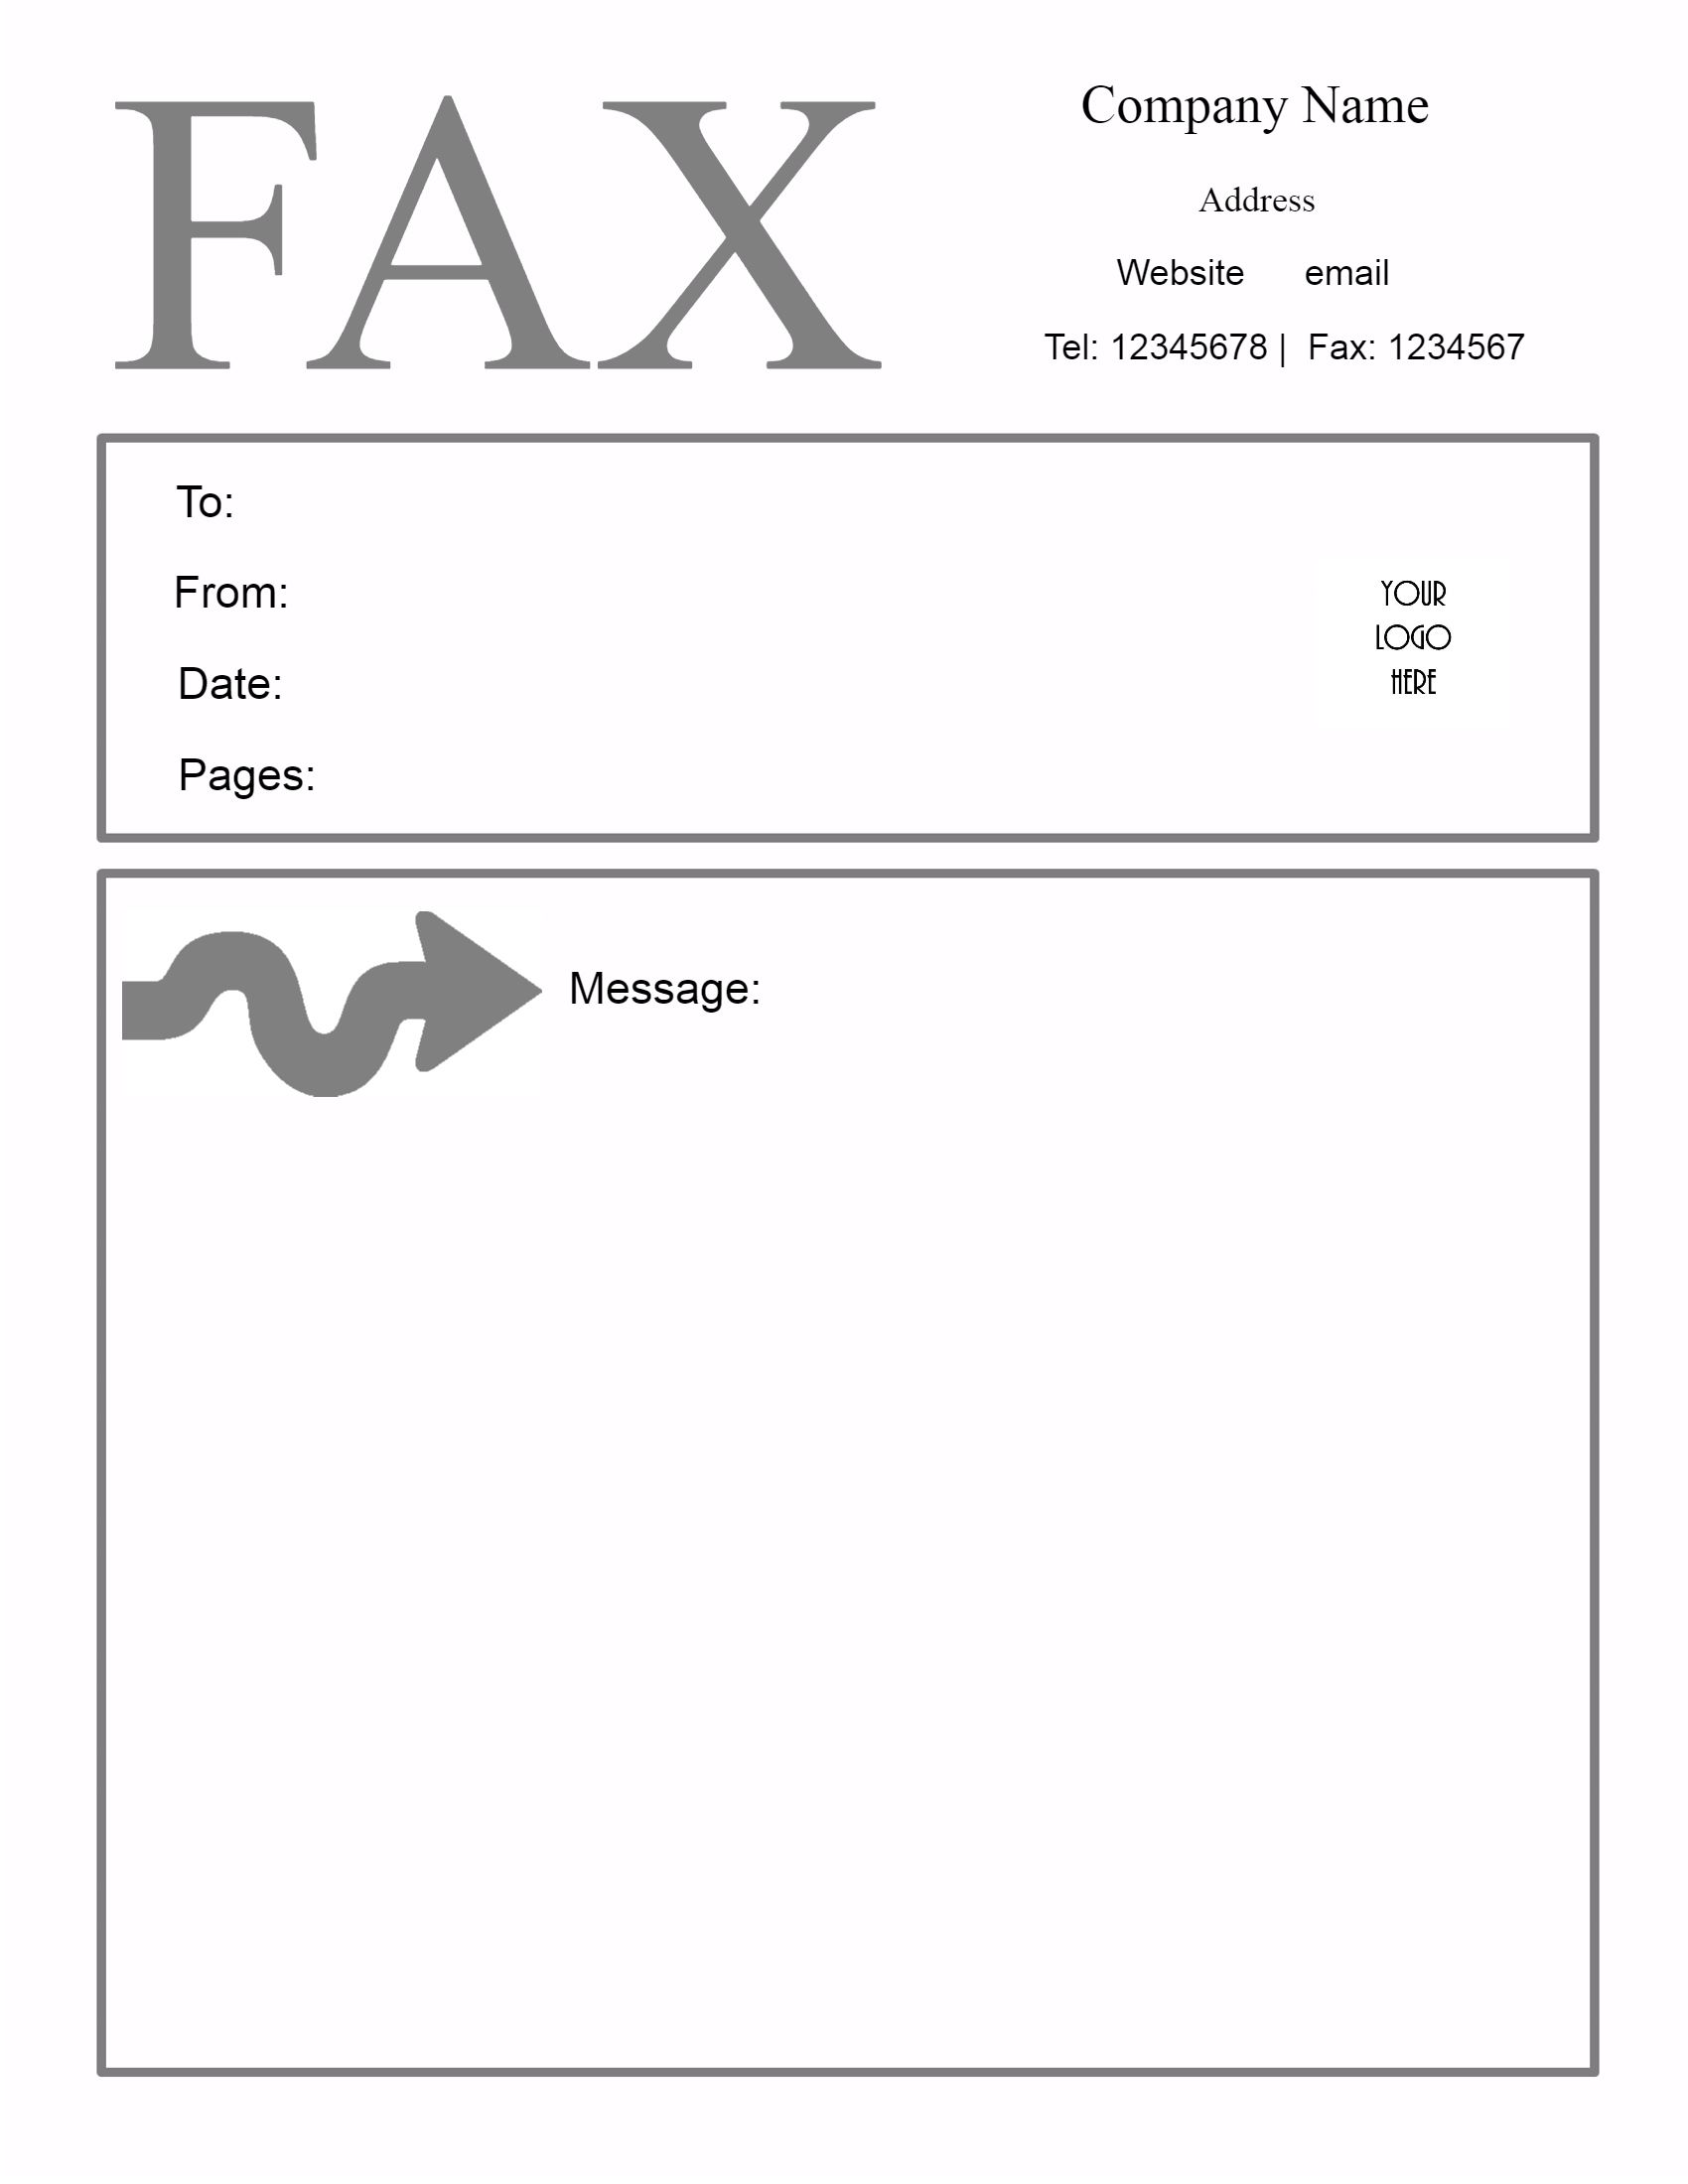 Printable Fax Cover Sheet. Sample Fax Cover Sheet. Free Fax Templates  Free Fax Cover Sheet Printable